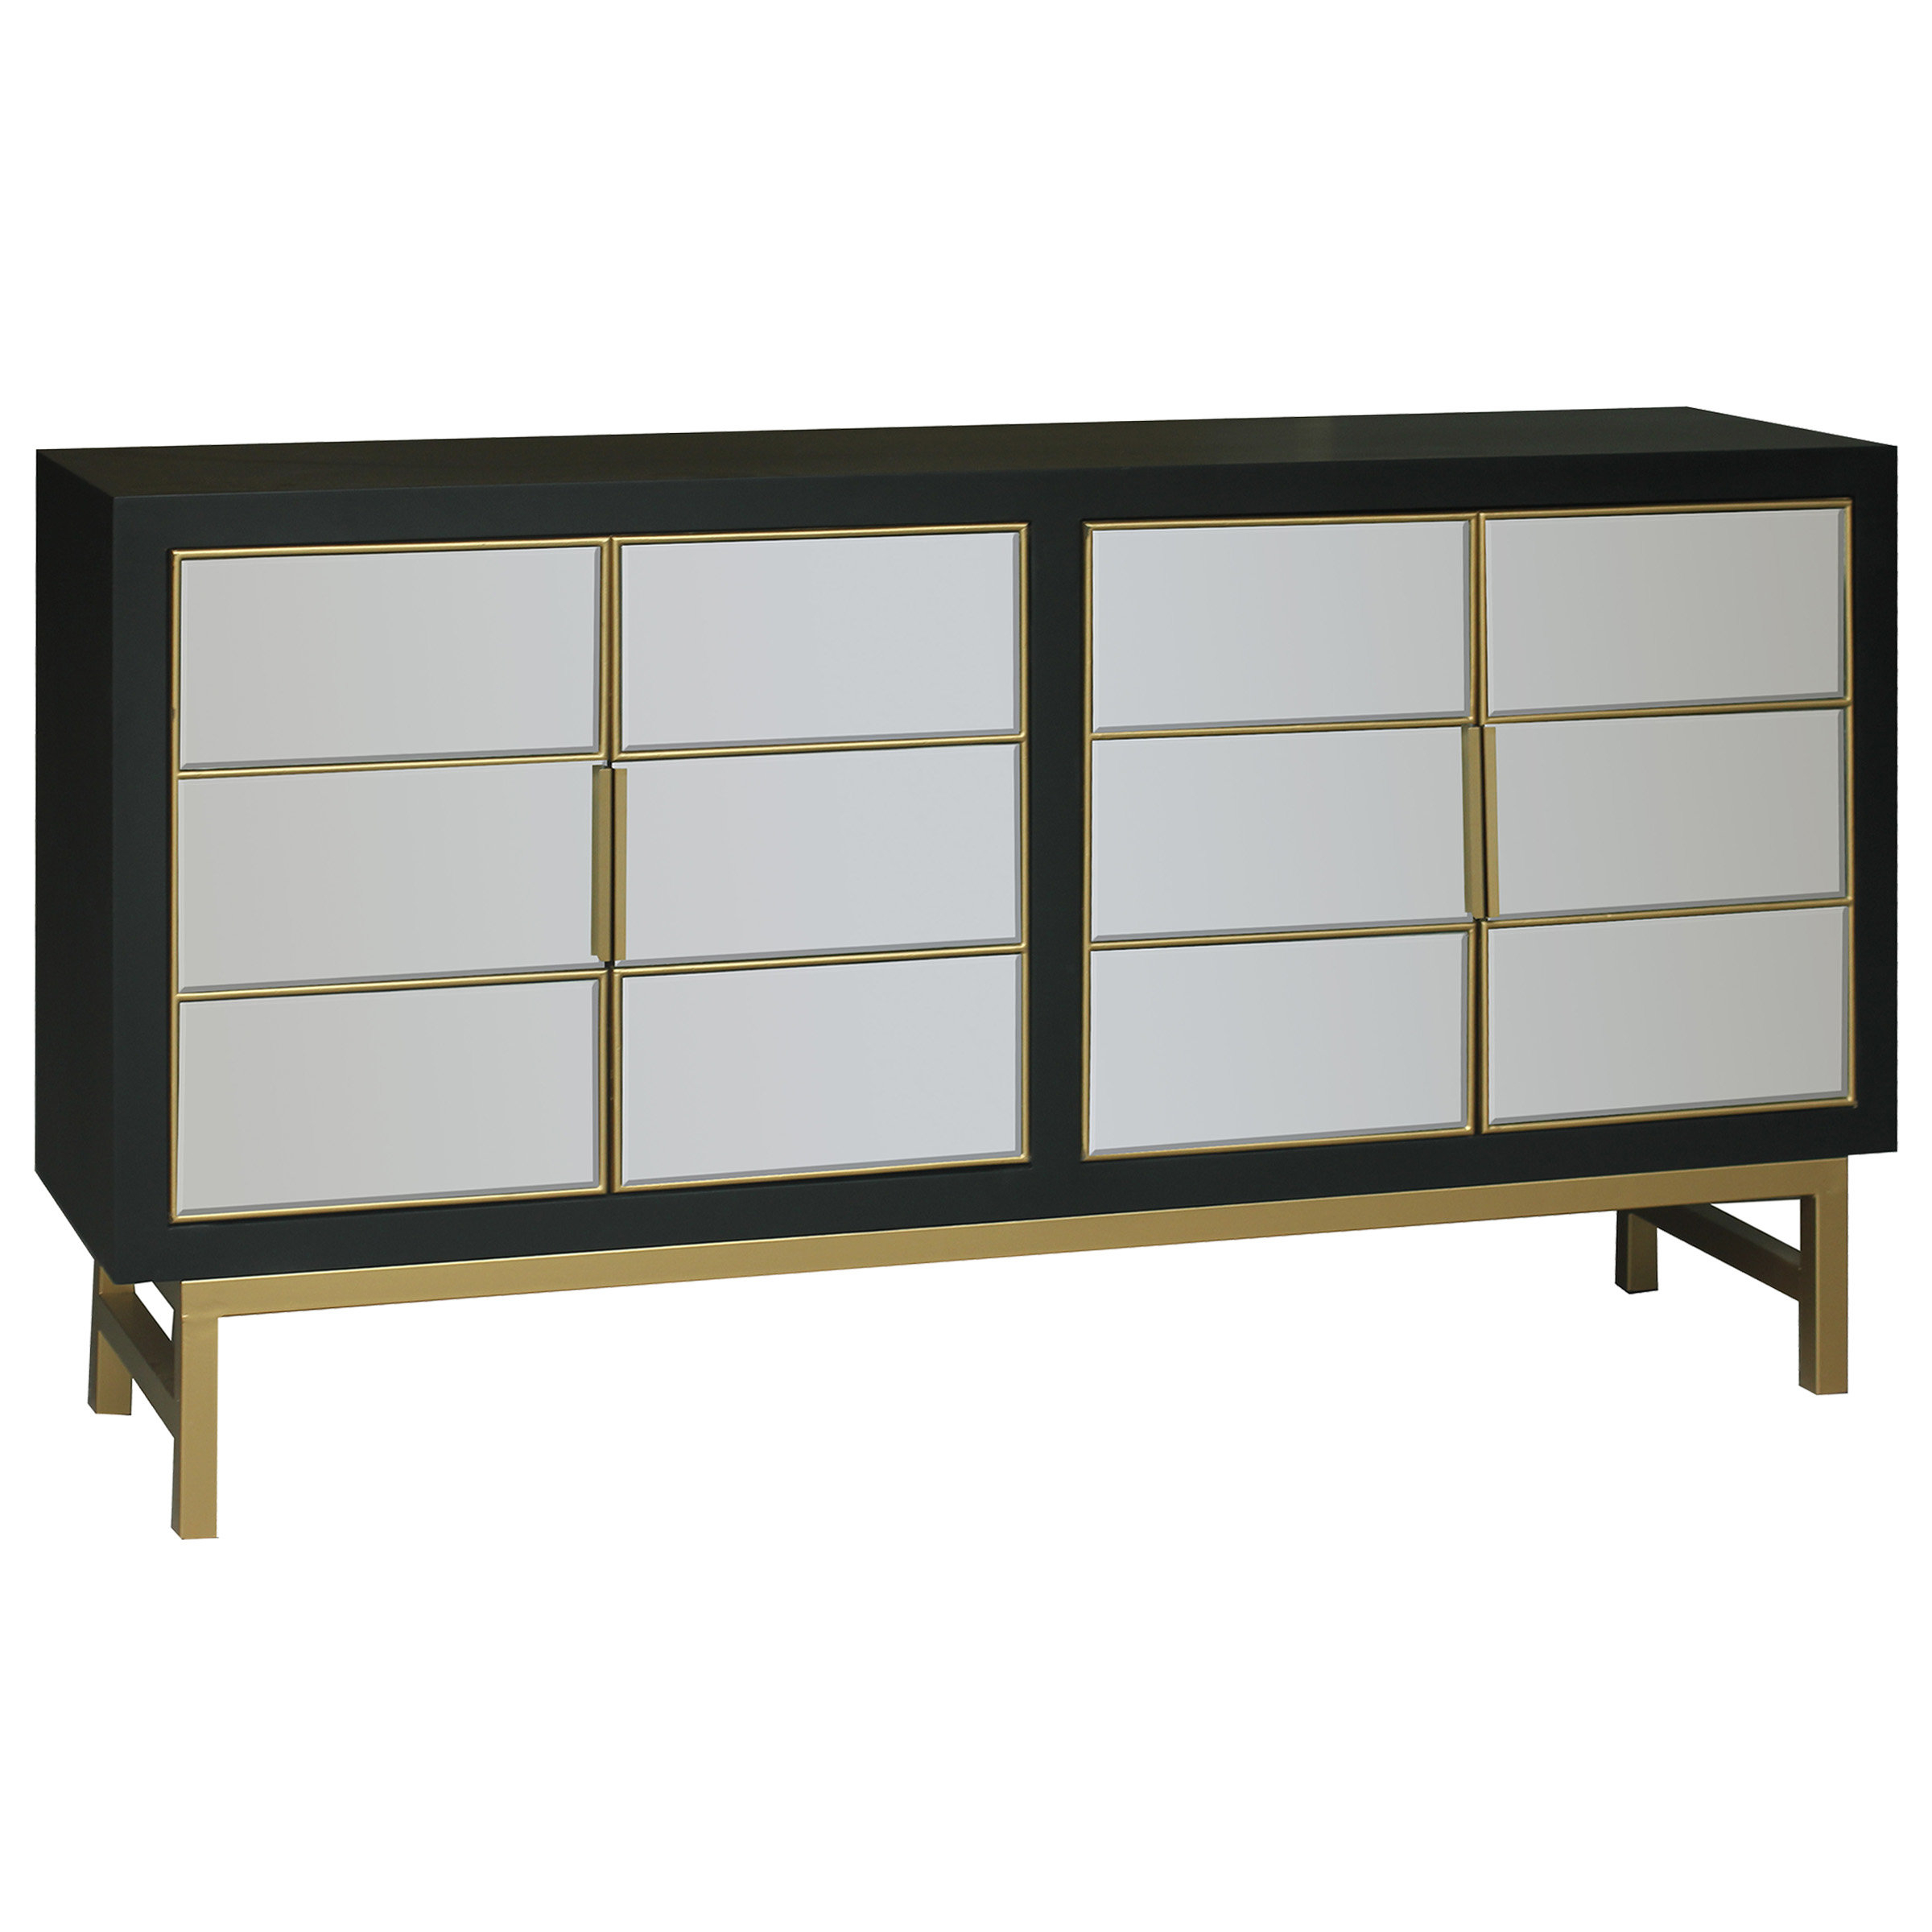 Keith 4 Door Credenza | Wayfair Intended For Kieth 4 Door Credenzas (View 3 of 20)